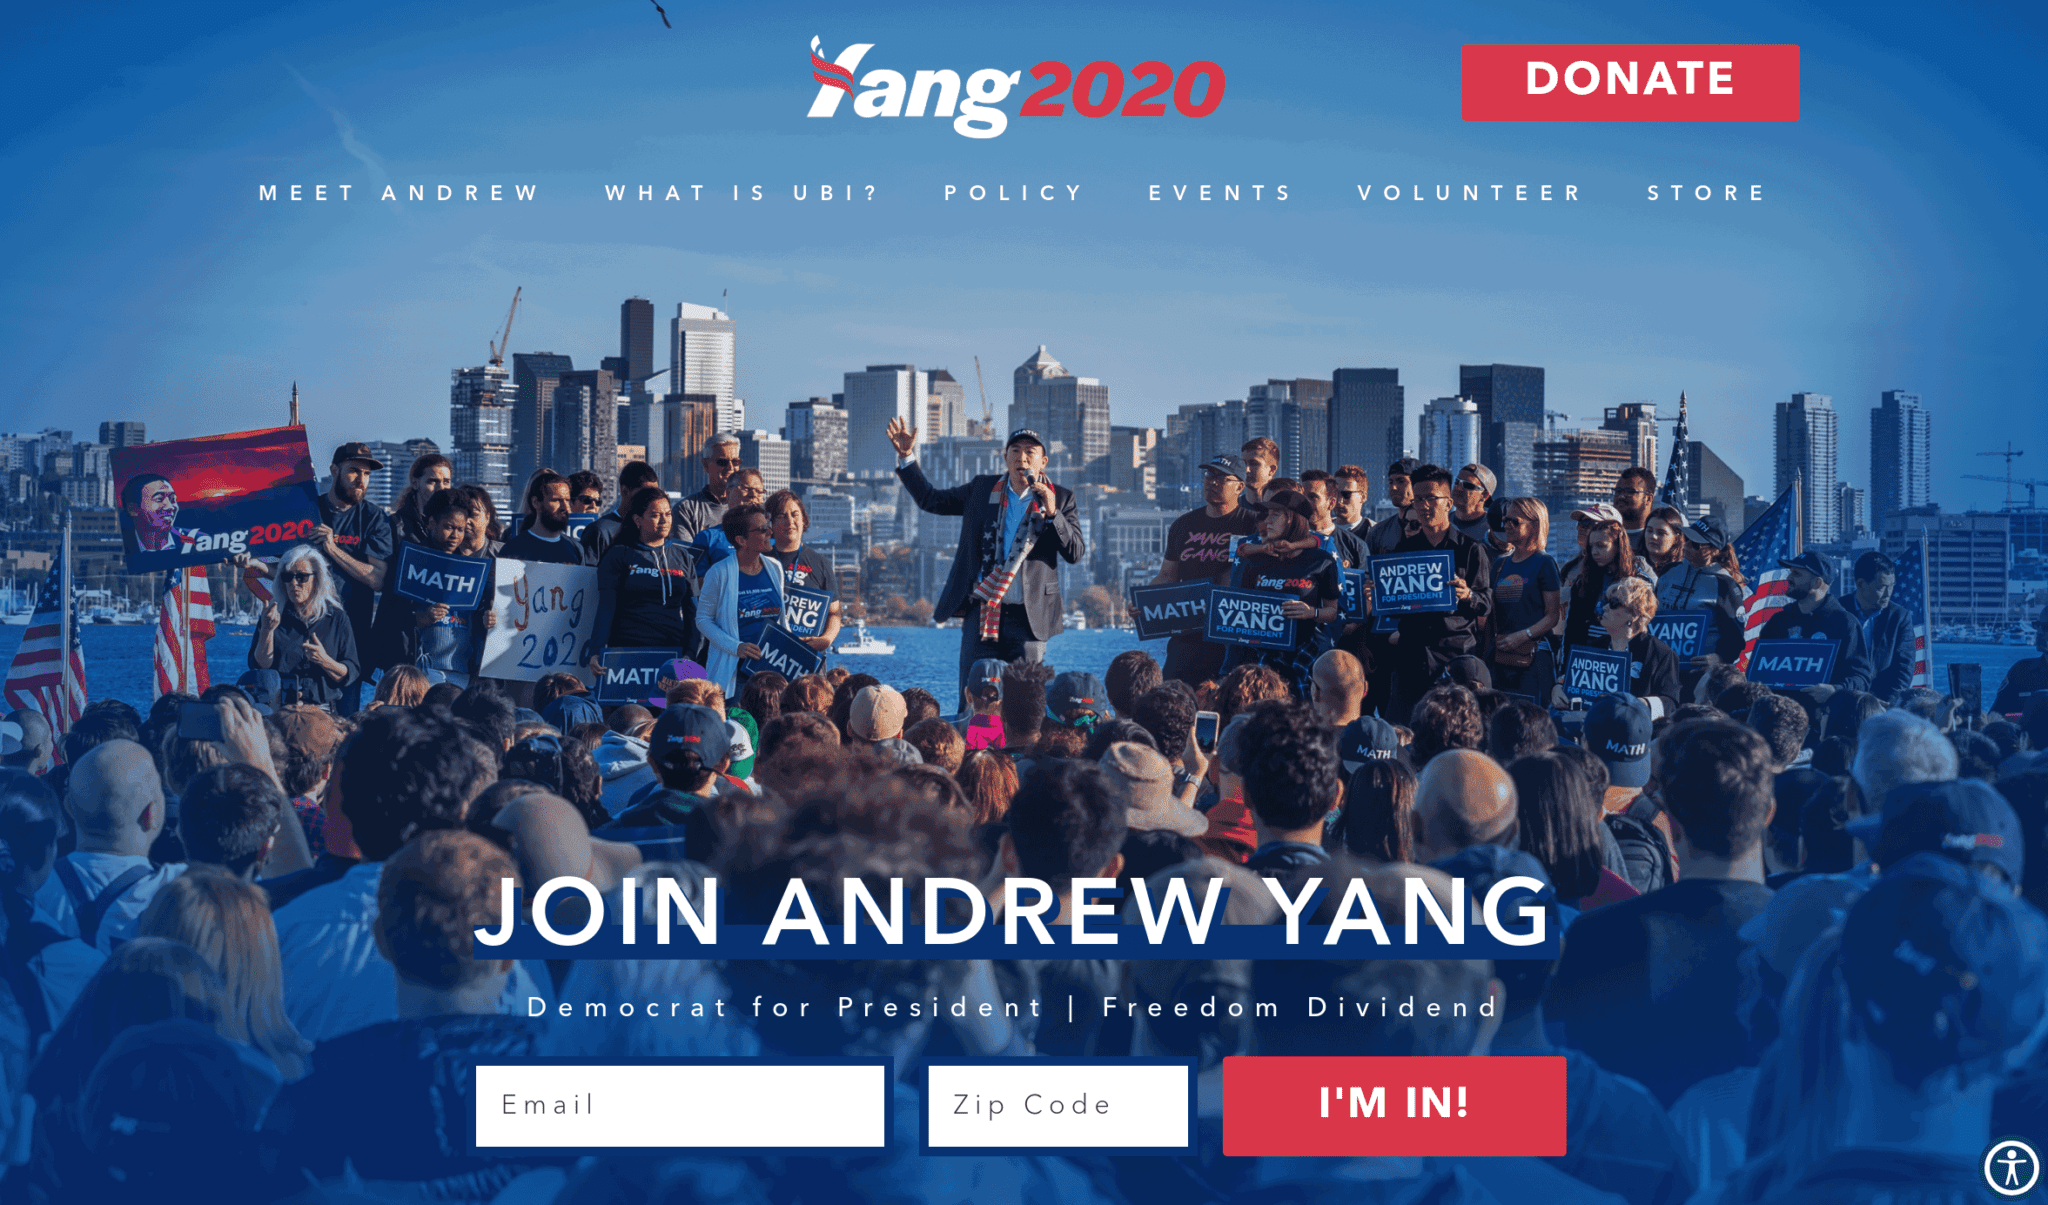 Andrew Yang 2020 campaign website